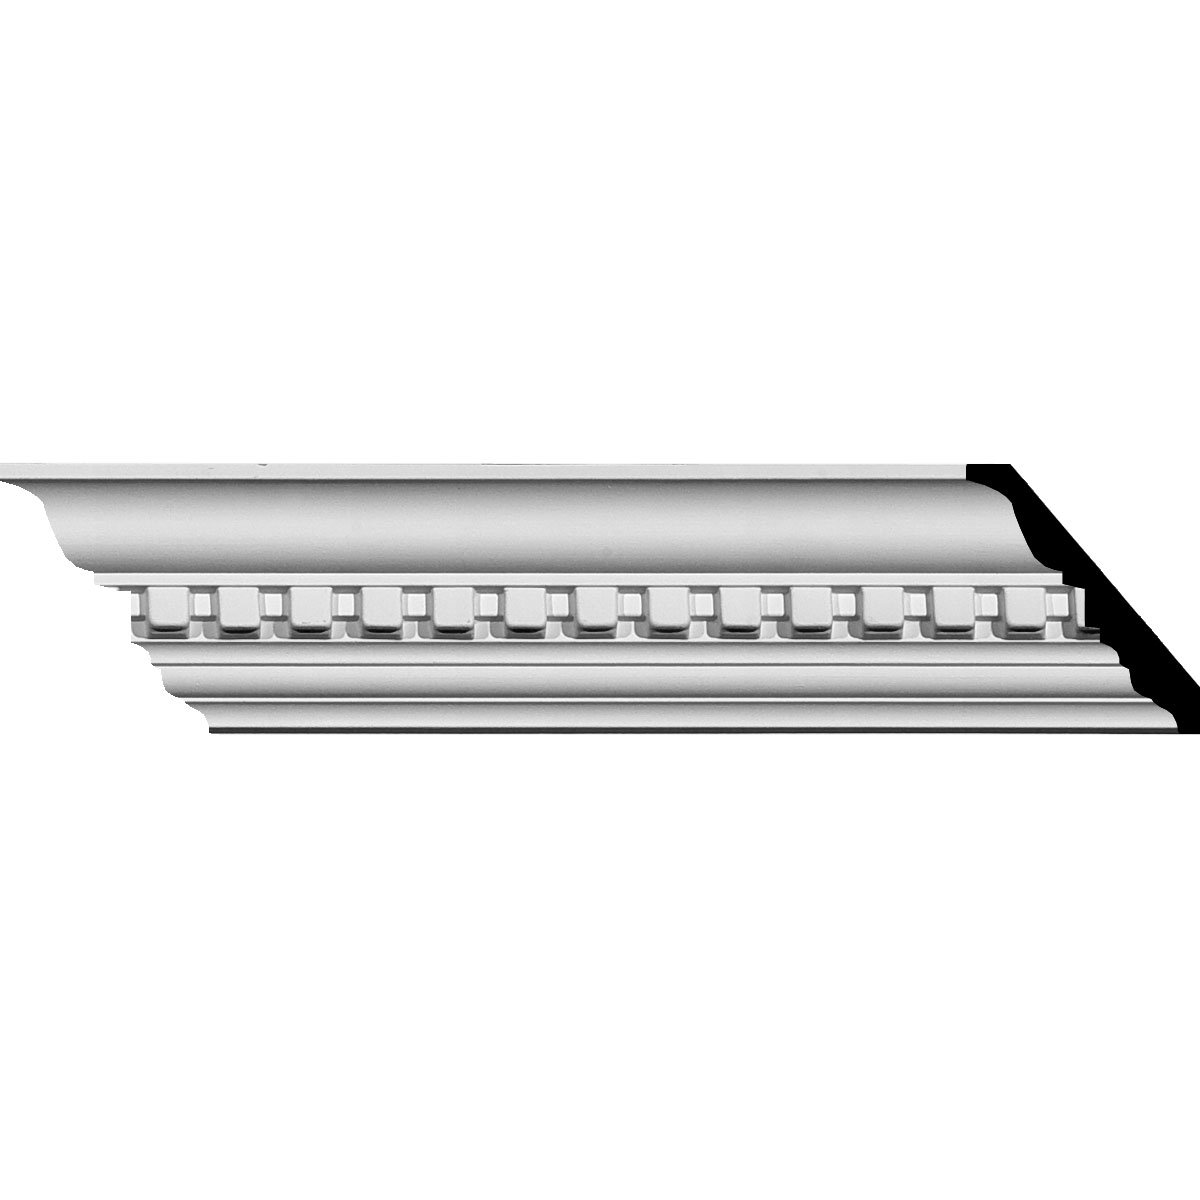 2 3/4''H x 2 3/4''P x 3 7/8''F x 94 1/2''L Dentil Crown Moulding